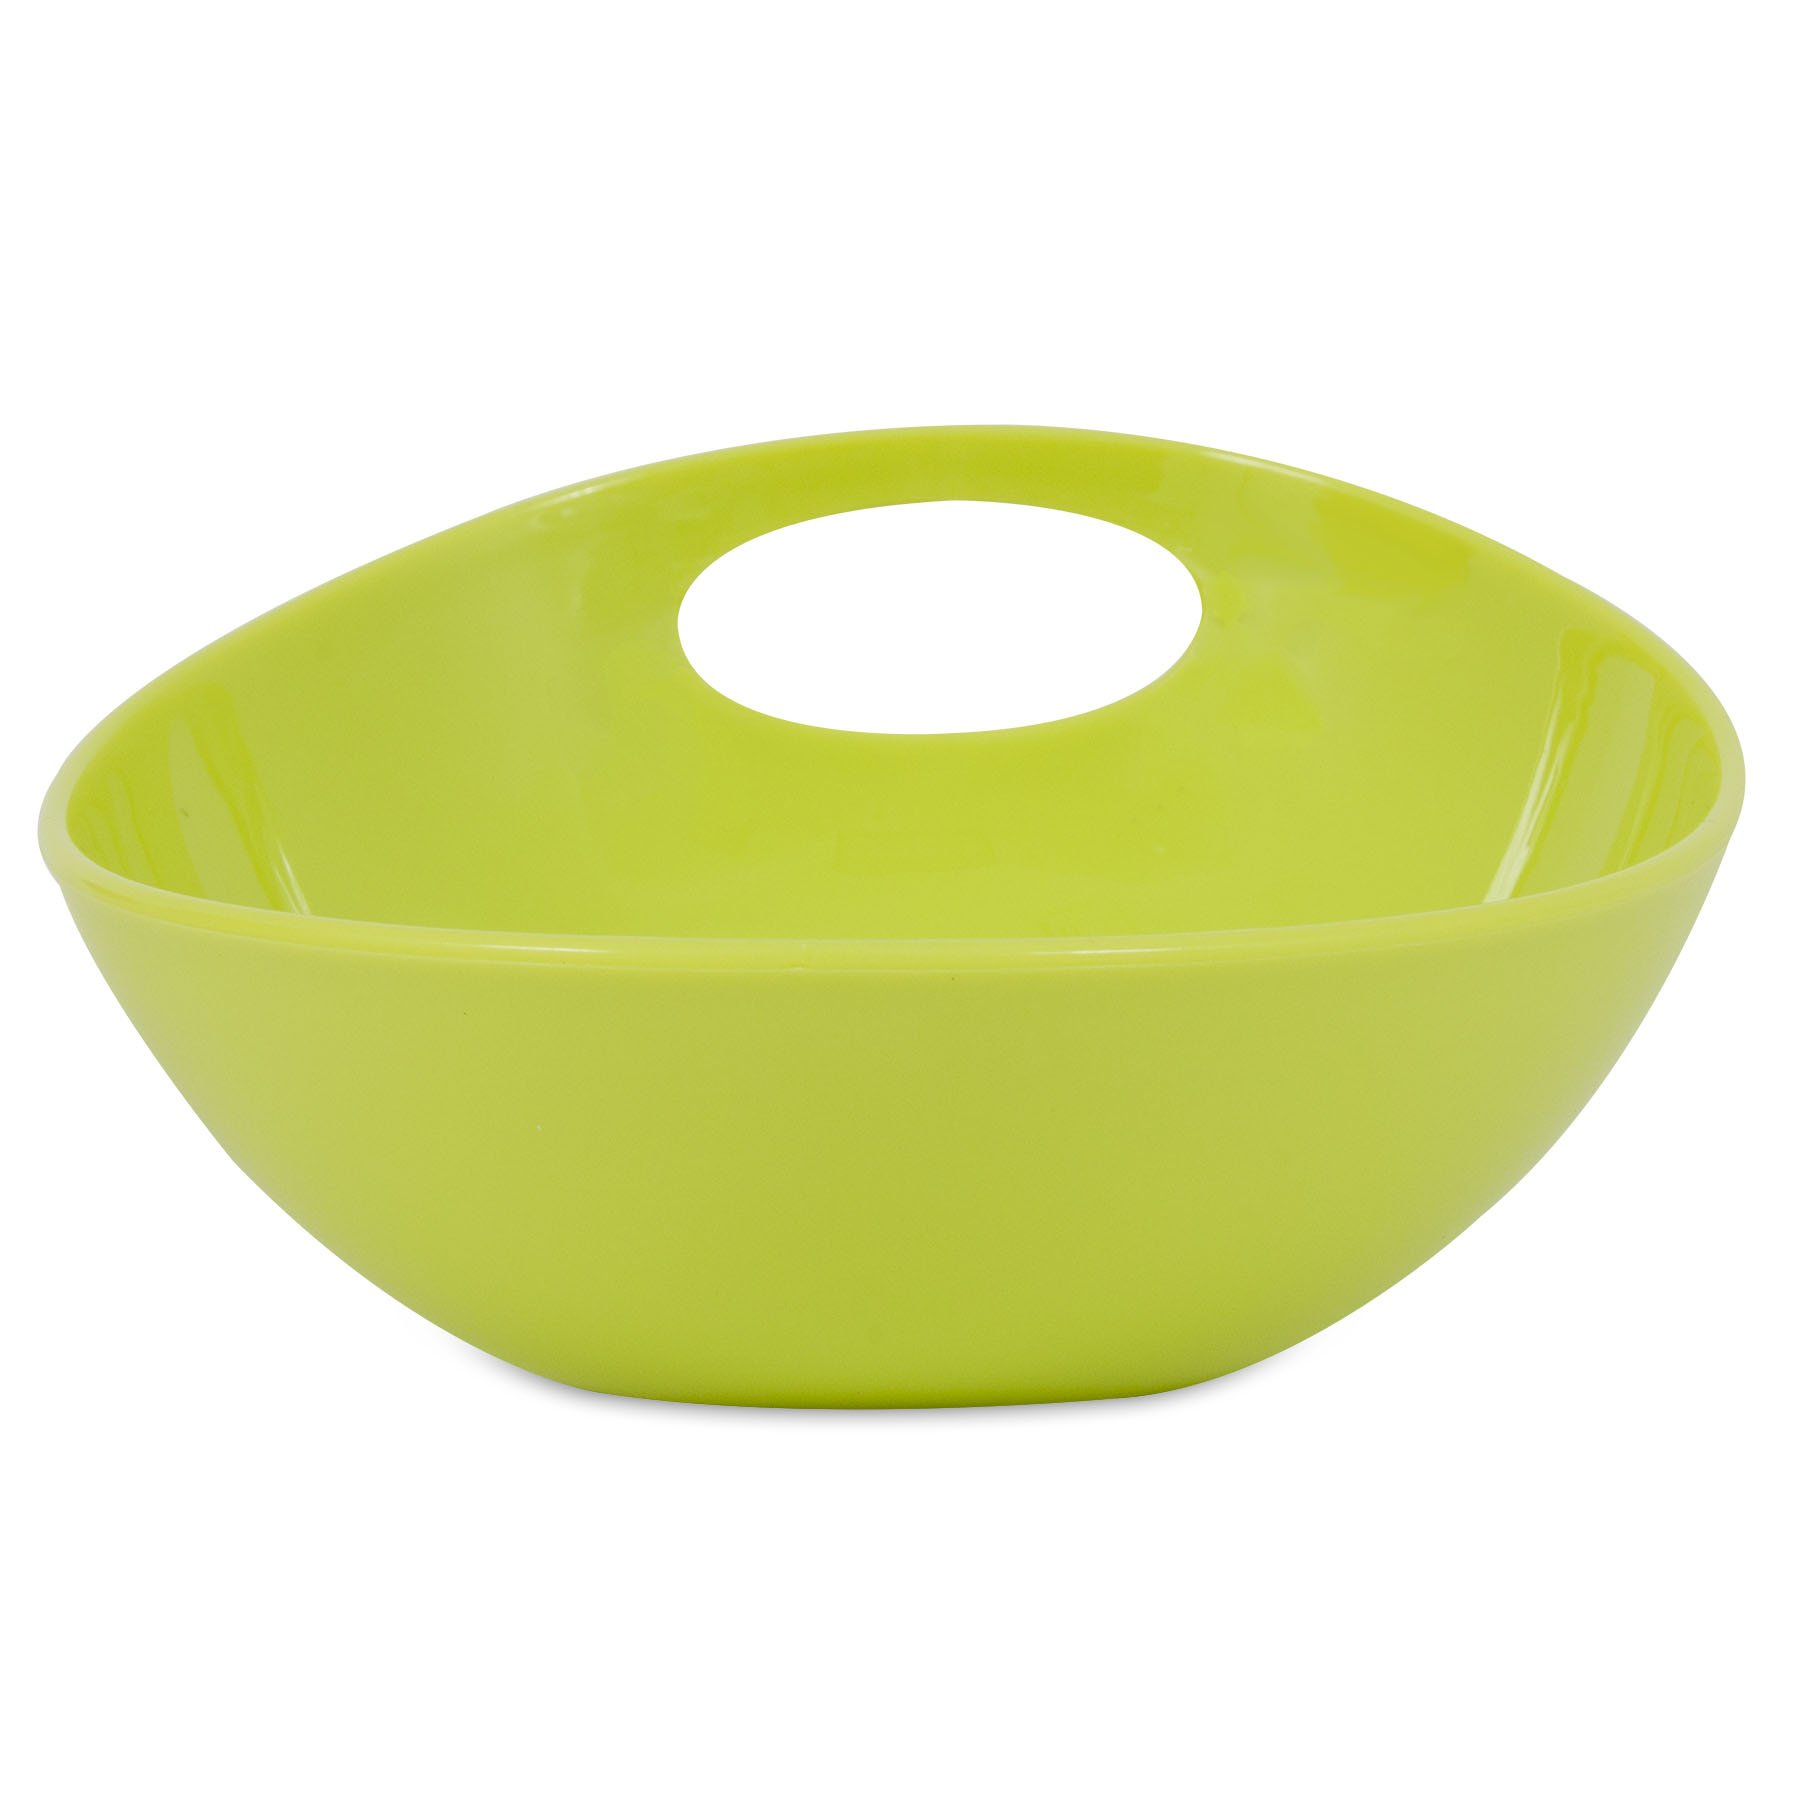 Wetnoz 23557 1-Cup Studio Scoop Dog Dish, Small, Pear by Petmate